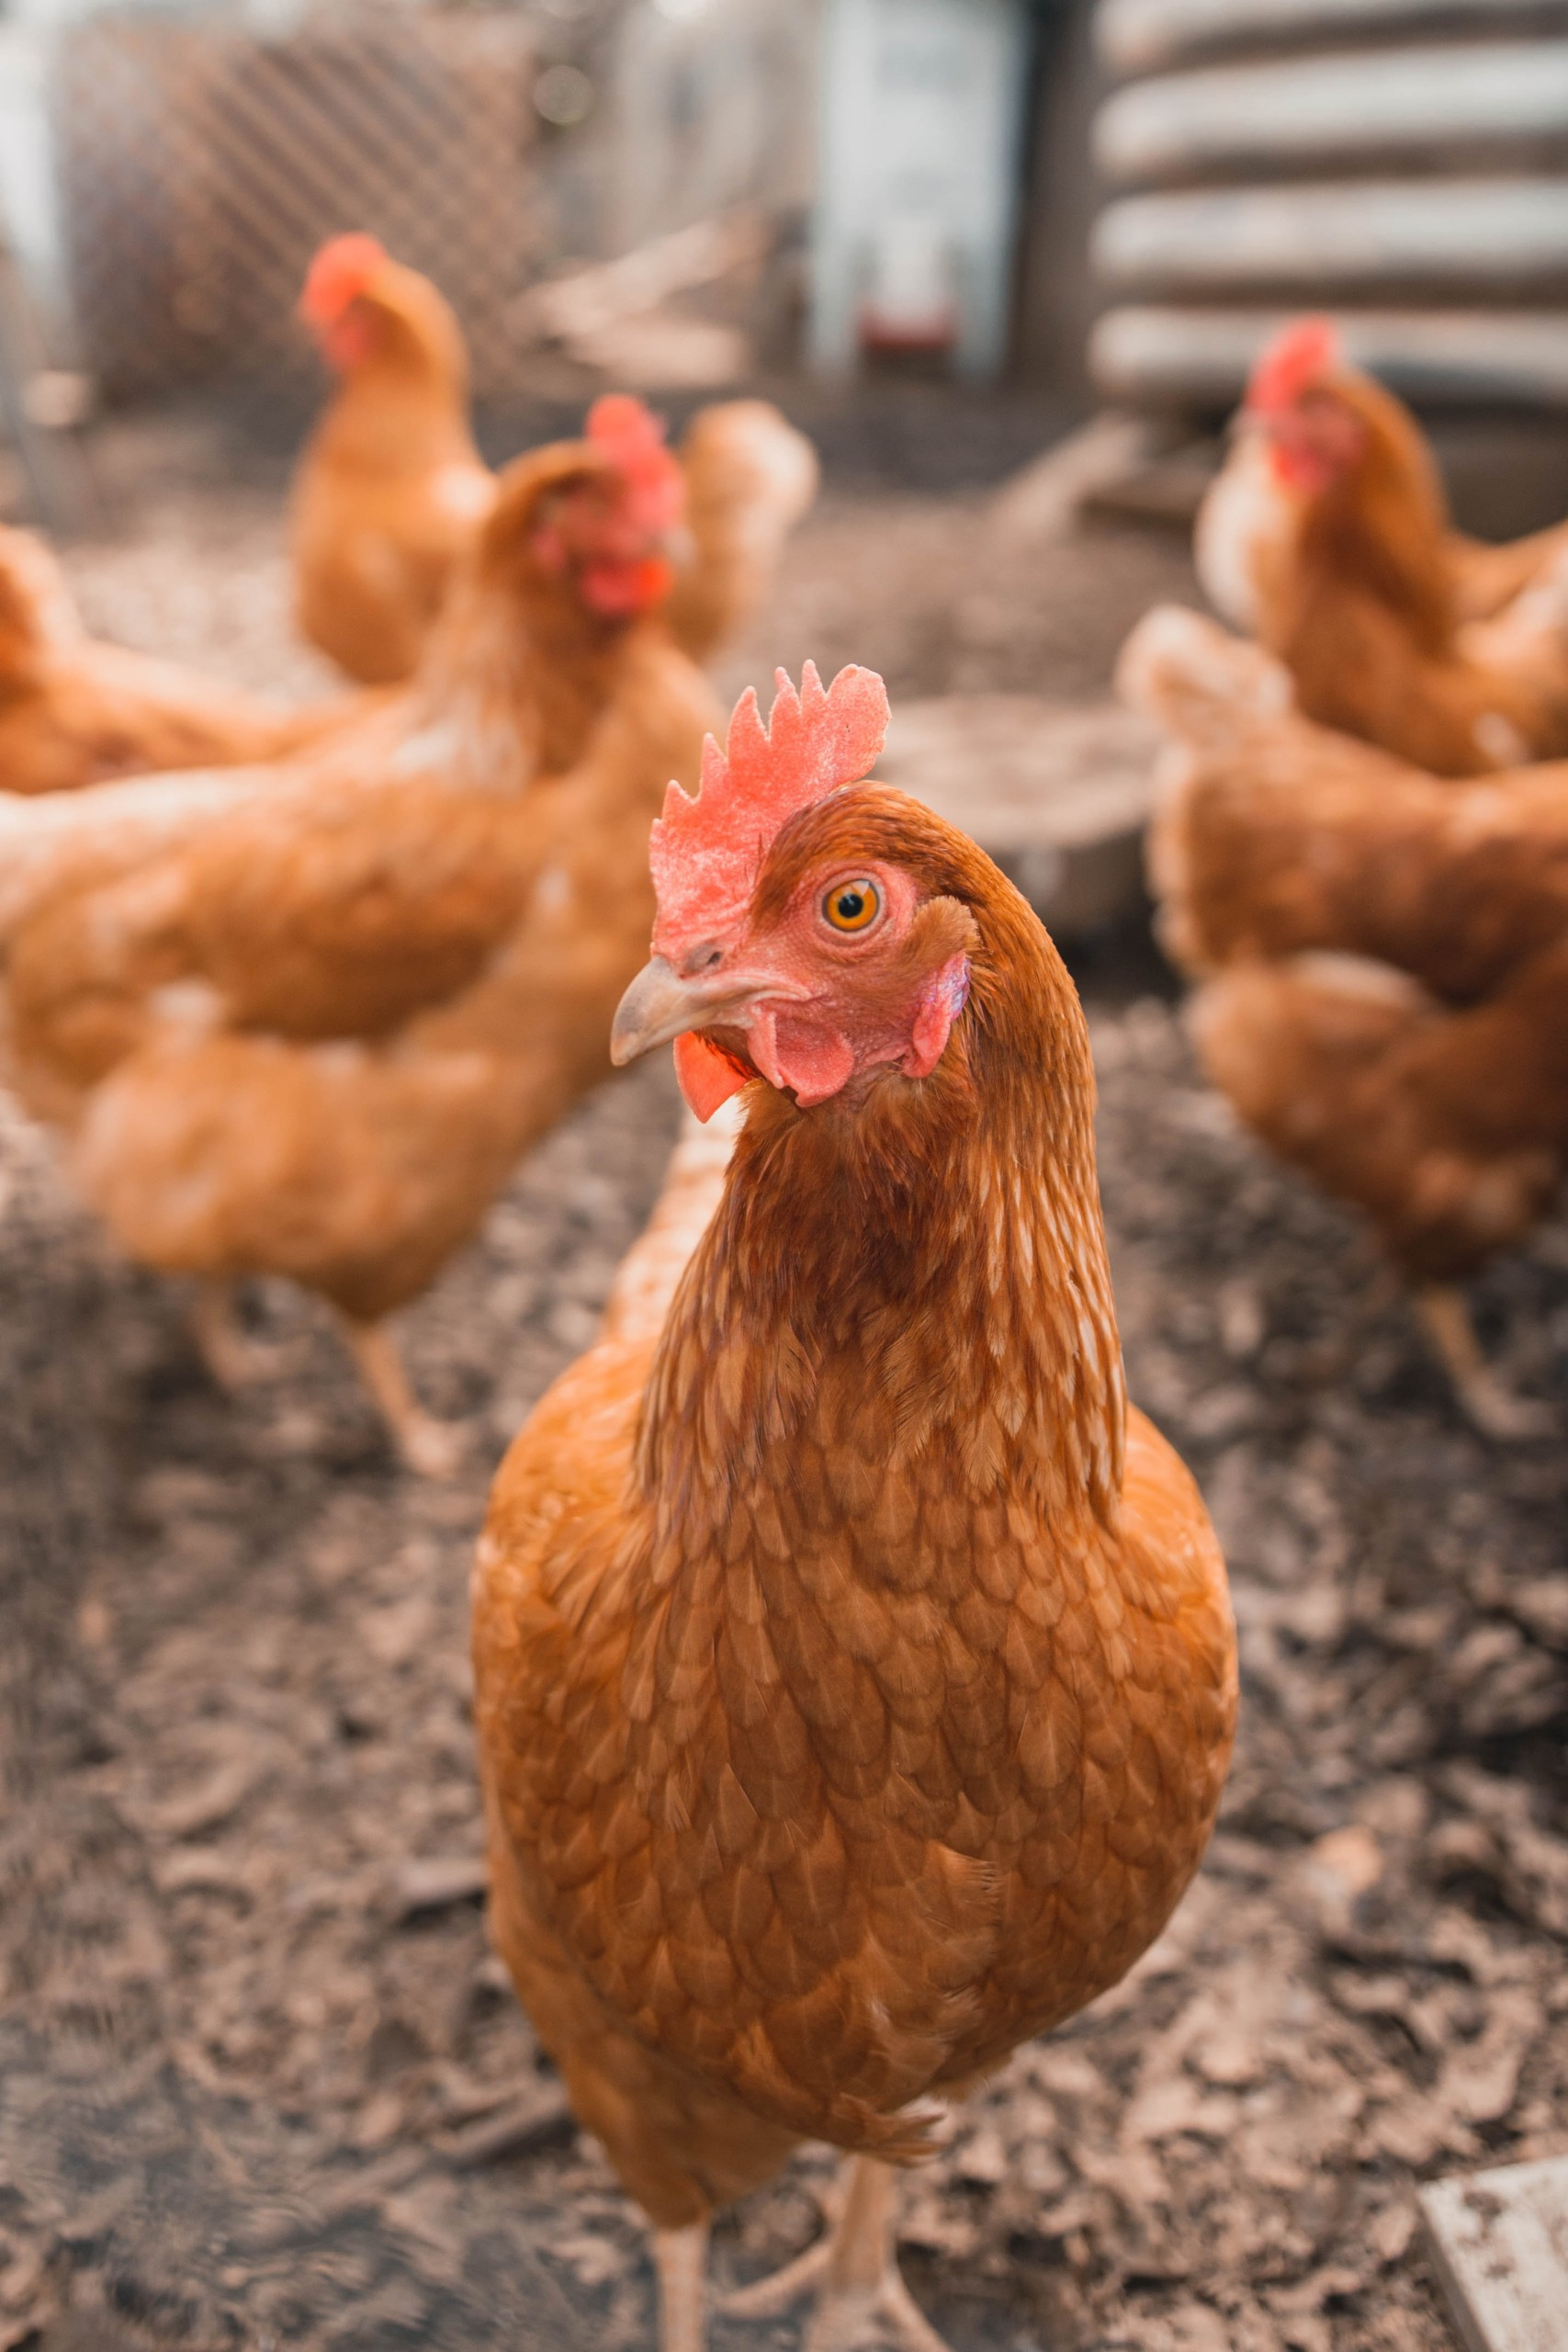 USDA potential rule change allowing processing of chickens with Avian Leukosis for human consumption